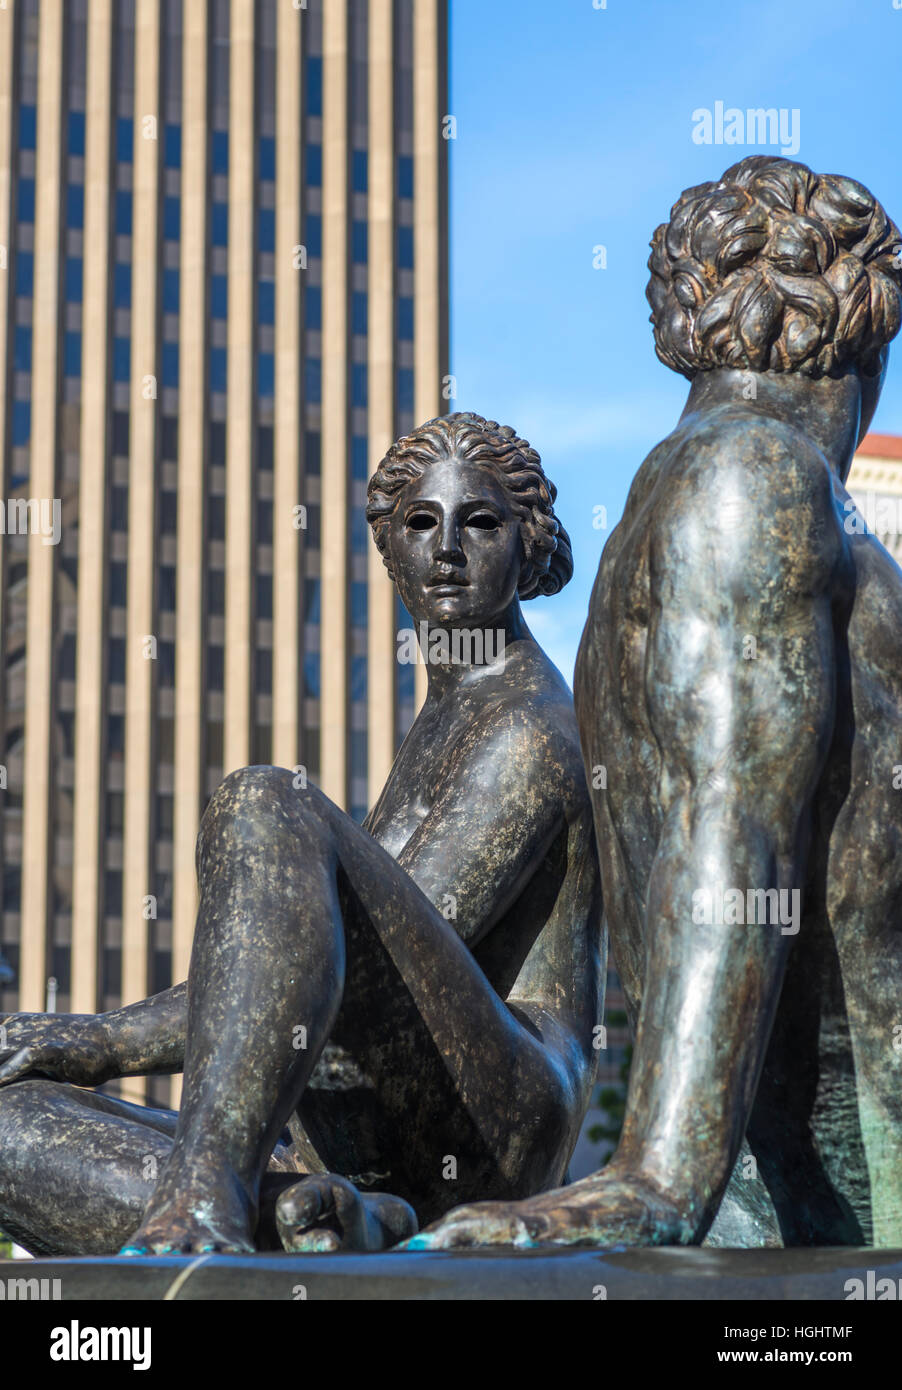 Fountain of Two Oceans sculpture in downtown San Diego, California, USA. - Stock Image